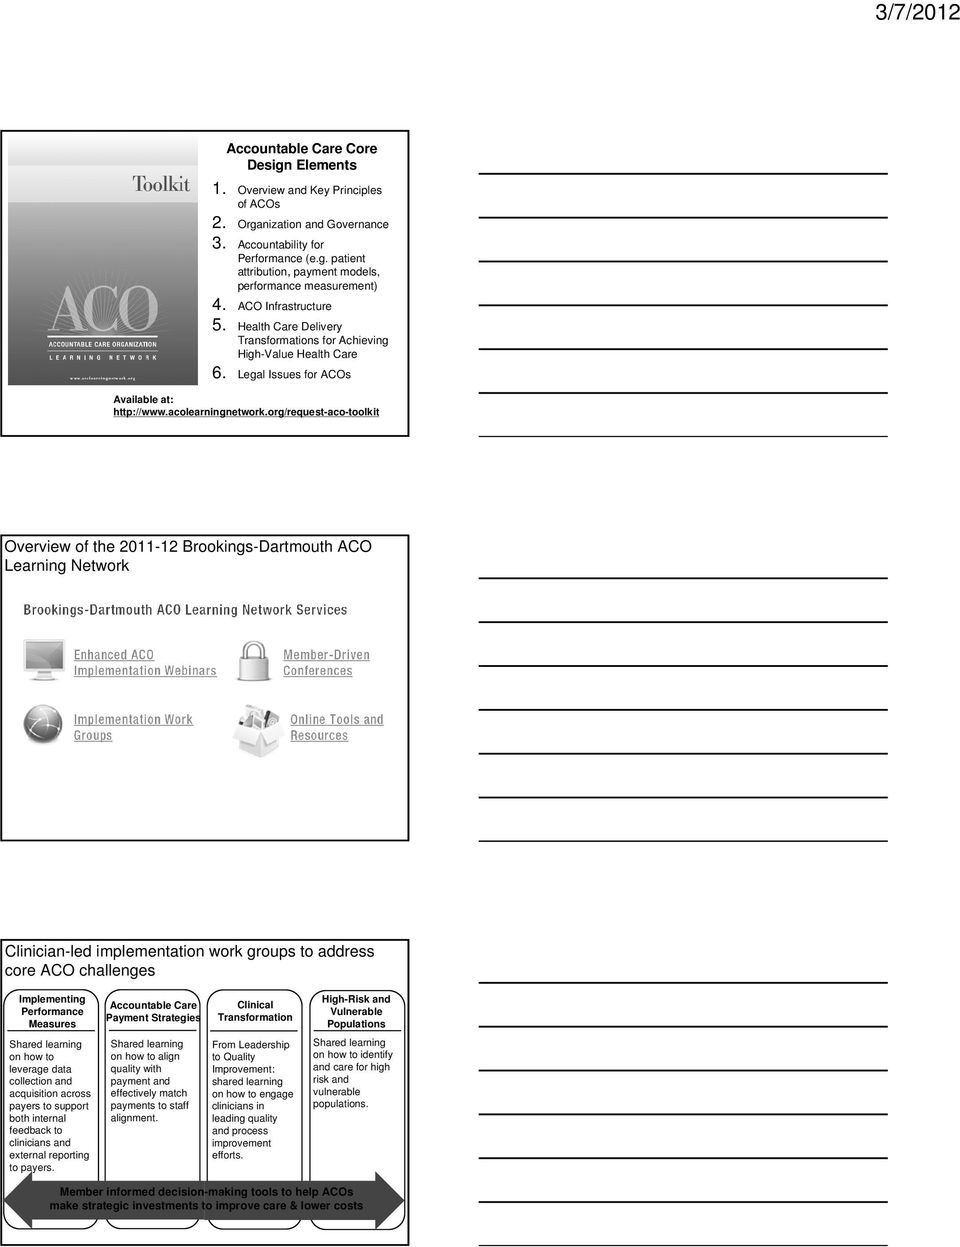 org/request-aco-toolkit Overview of the 2011-12 Brookings-Dartmouth ACO Learning Network Clinician-led implementation work groups to address core ACO challenges Implementing Performance Measures